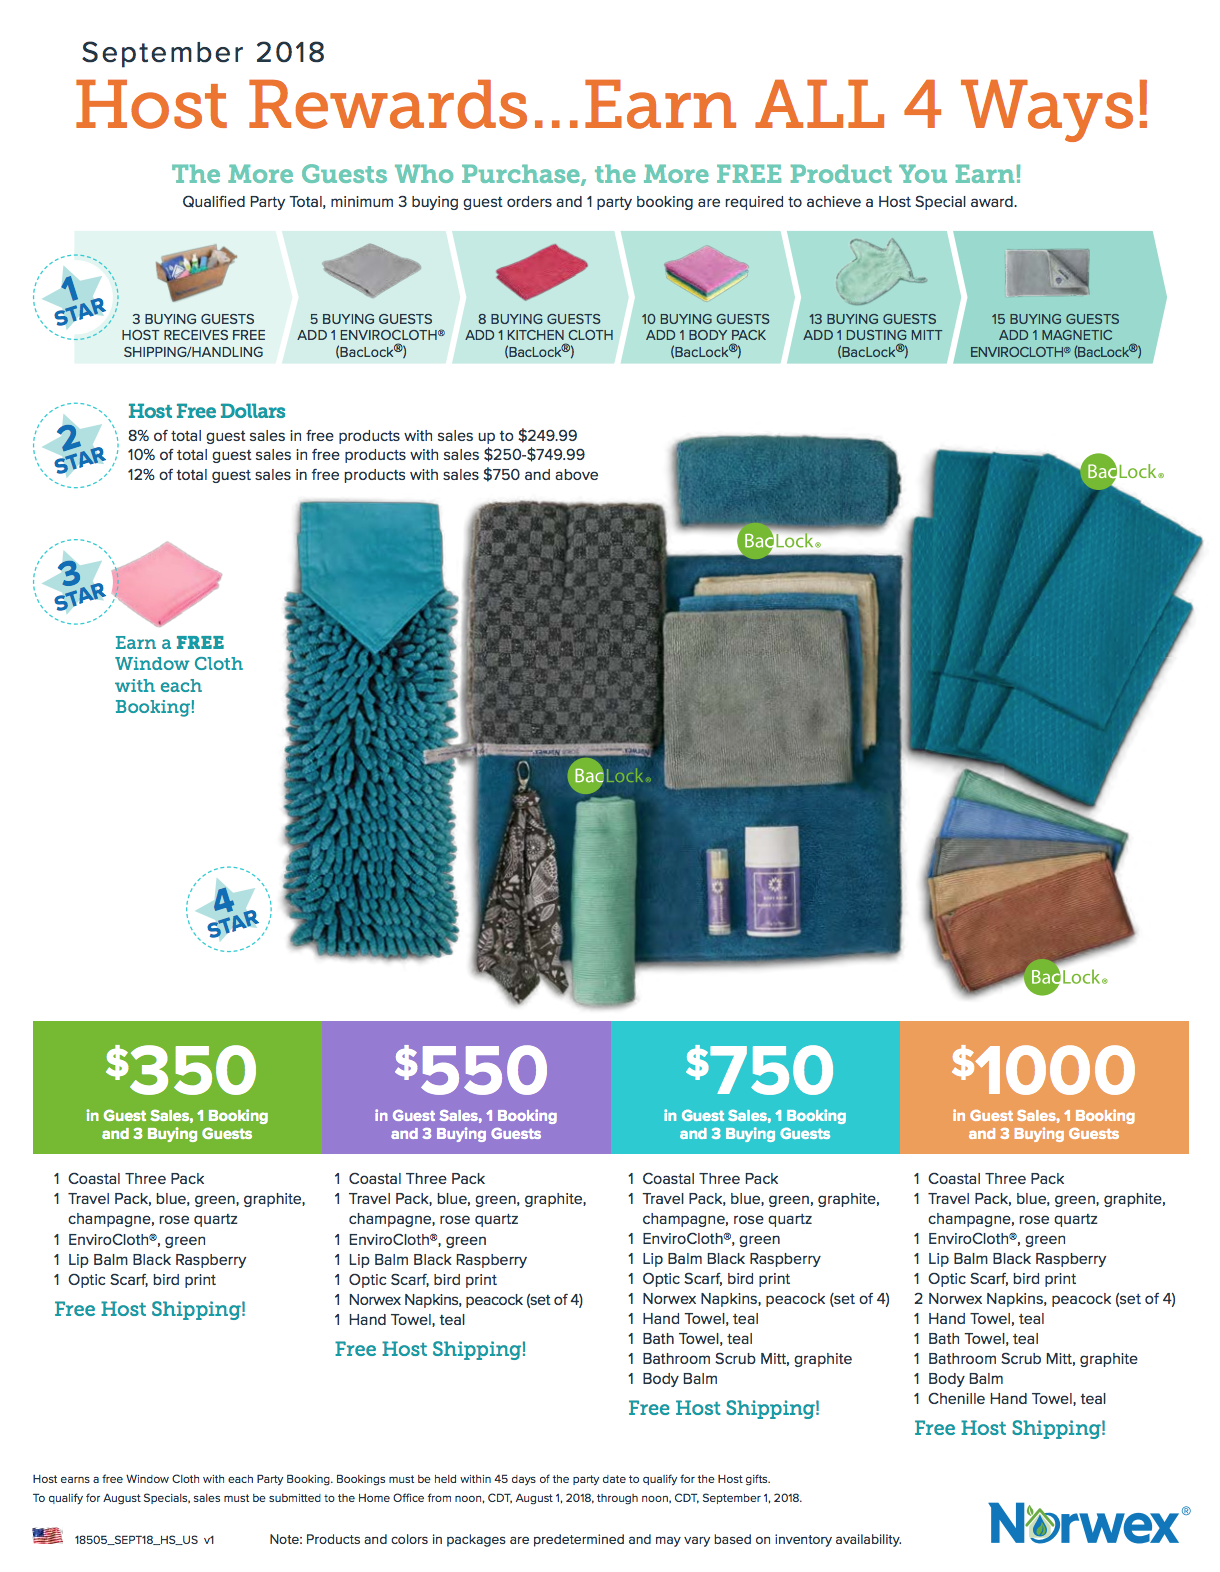 September 2018 Norwex Hostess Gifts and Customer Specials - Work ...